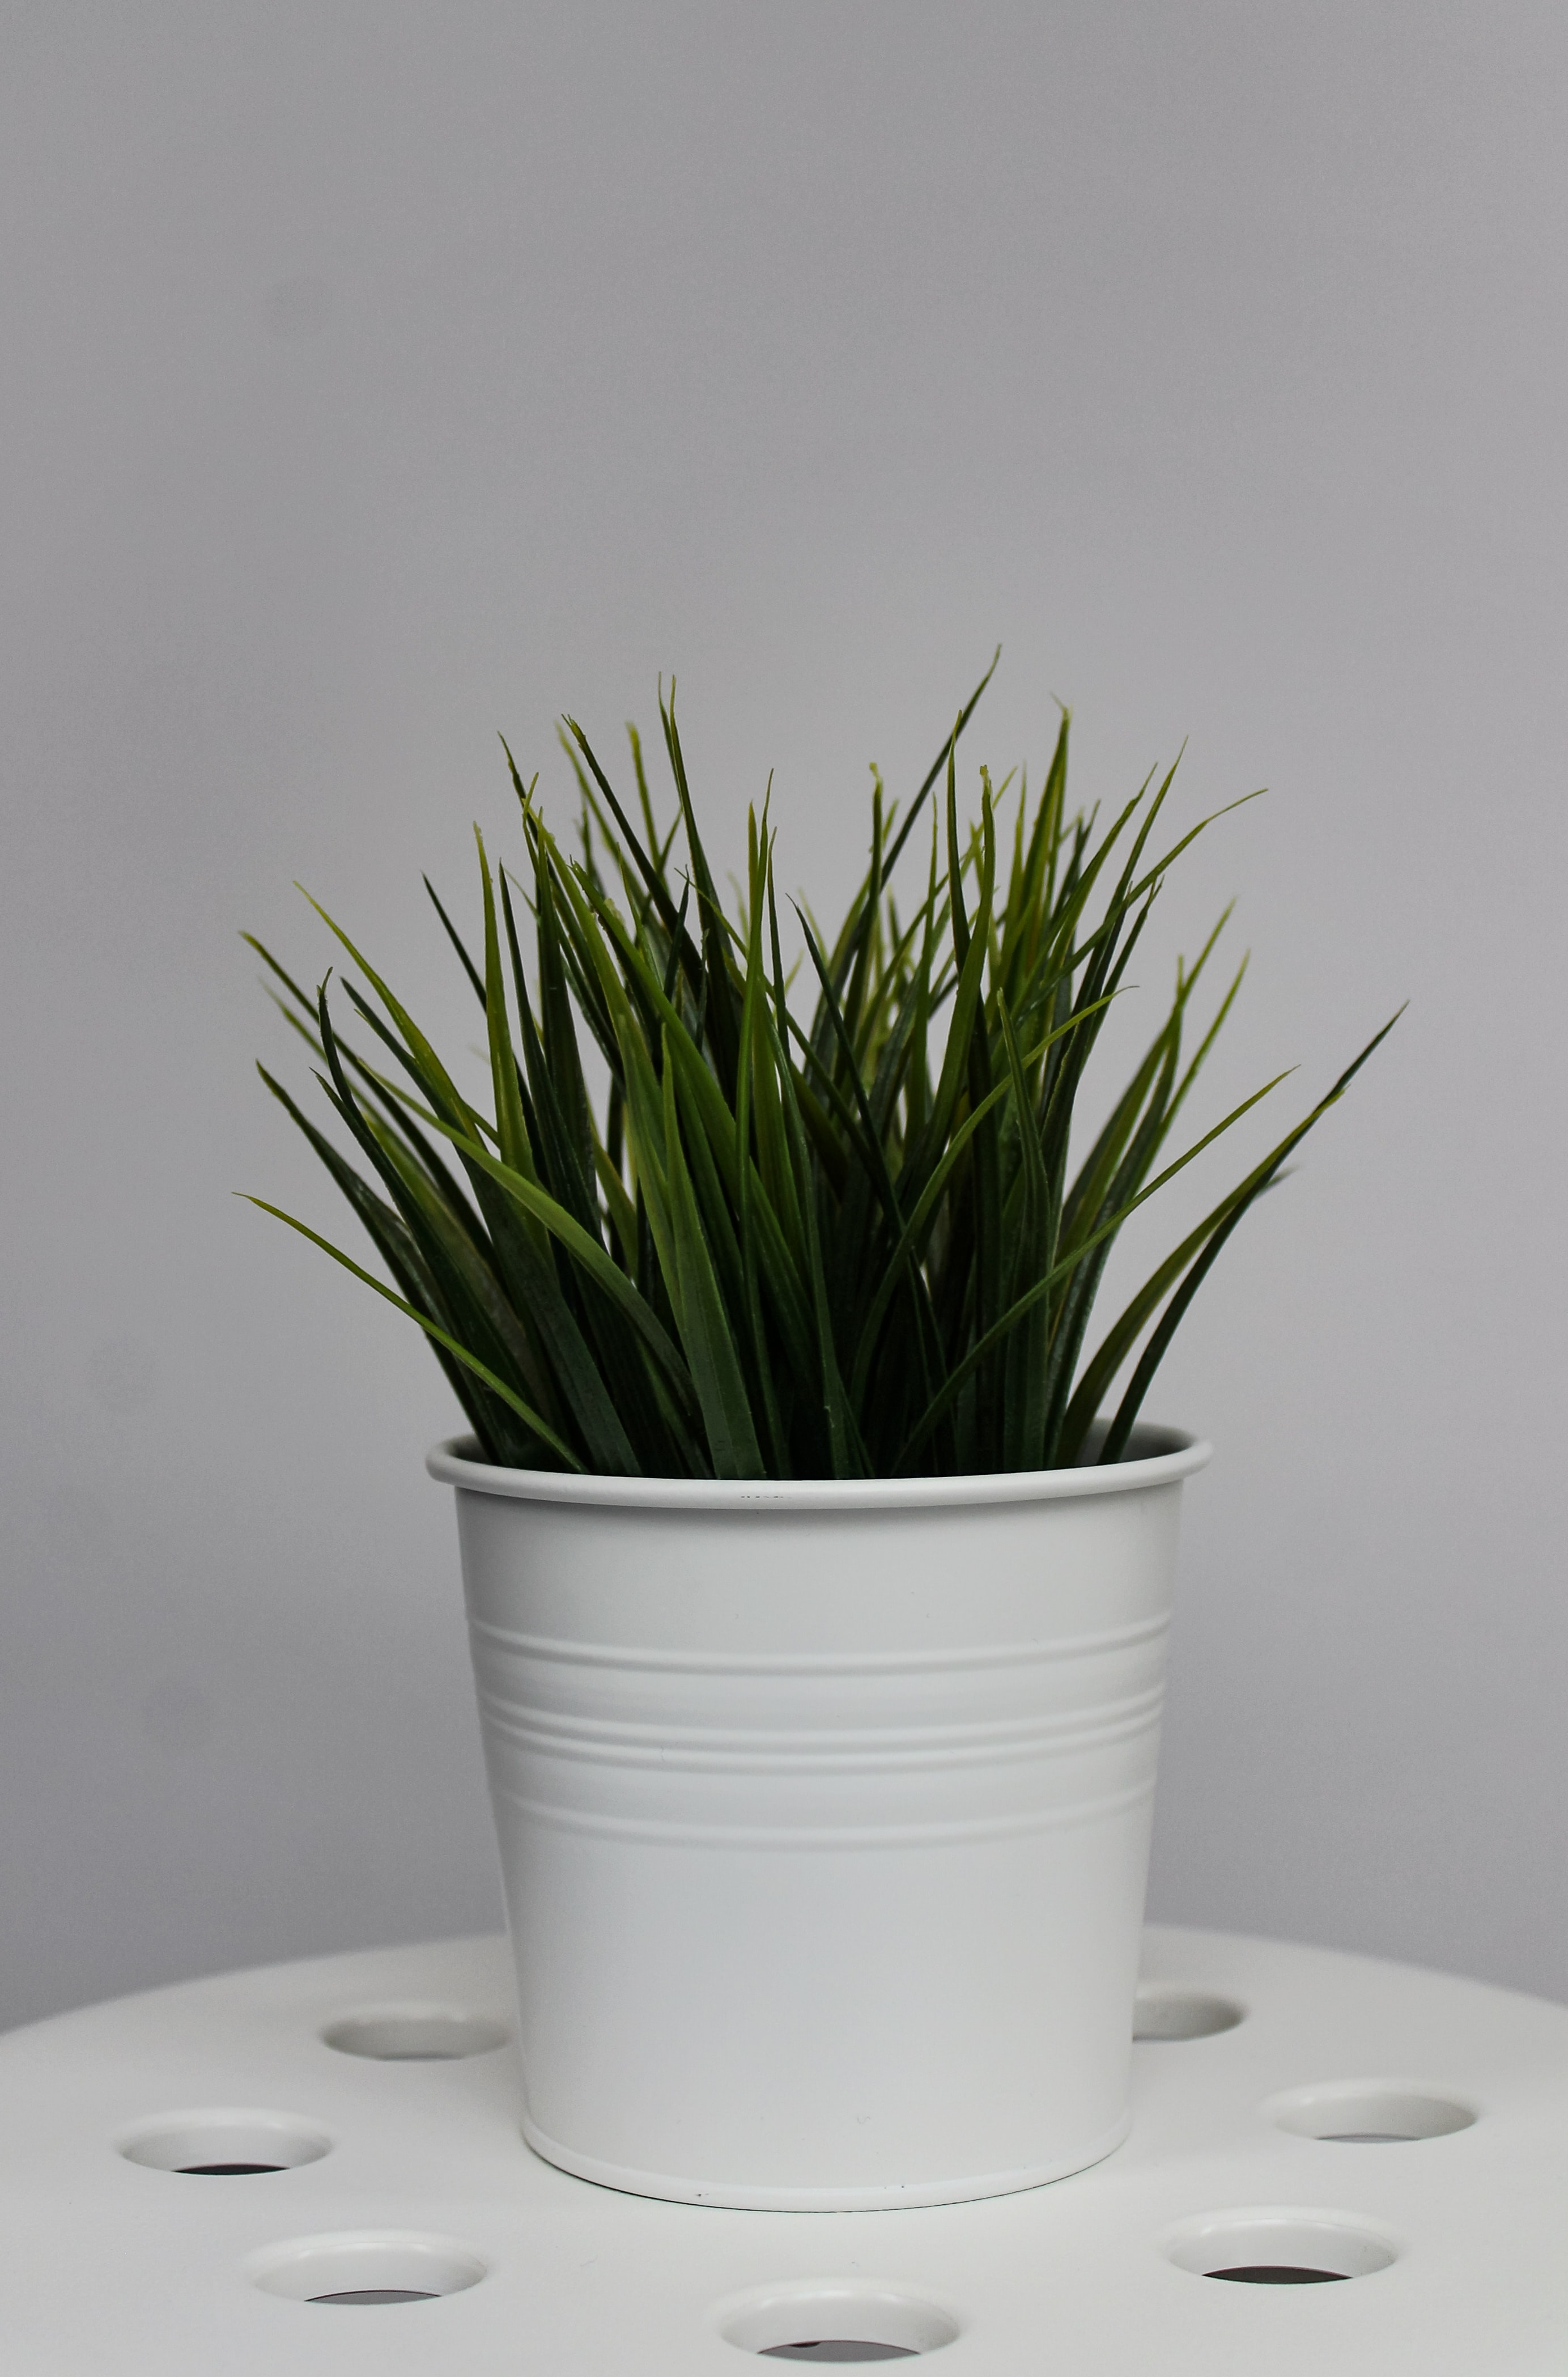 green-leafed plant on white flower pot